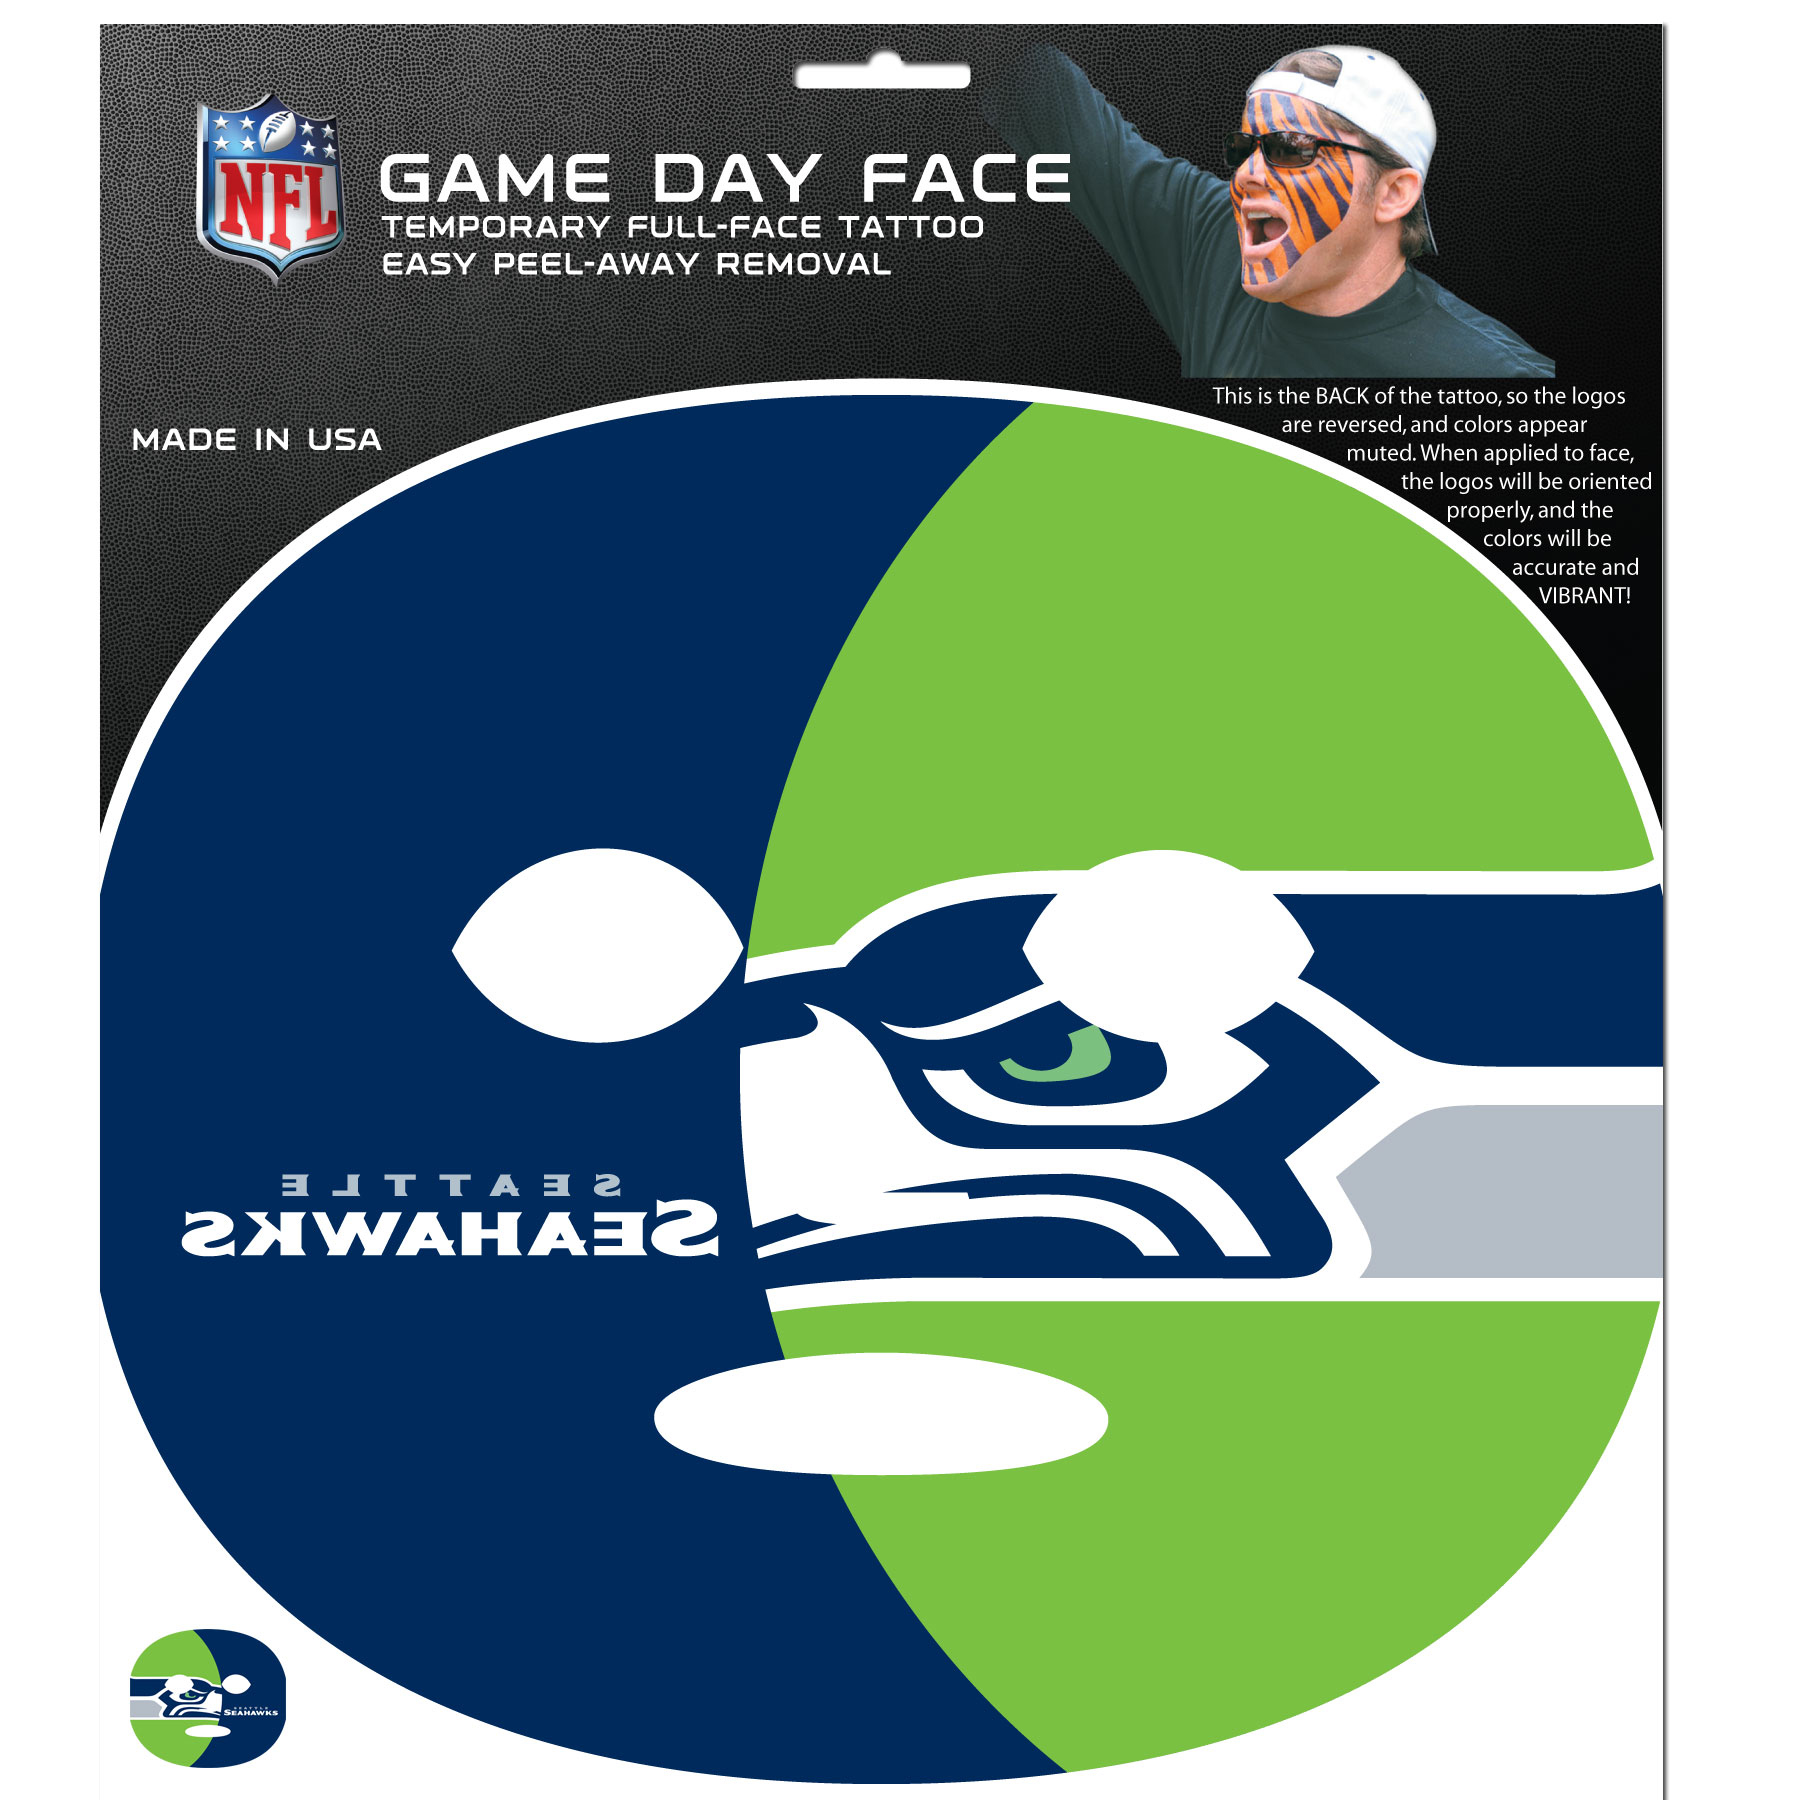 Seattle Seahawks Set of 8 Game Day Faces - No better way to show your team pride than by painting your face. Siskiyou's Game Day Face Temporary Tattoo isn't your typical face paint. It is a water based application that doesn't smudge, smear or sweat off while you're wearing it and easily peels off after you're done celebrating your team's big Win! The temporary tattoo is large enough to trim down to fit your face. Our Game Day Face Temporary Tattoo's are fun for fans of all ages. You may have seen our product before, these are the same Temporary Face Tattoos as pitched on ABC's Shark Tank.